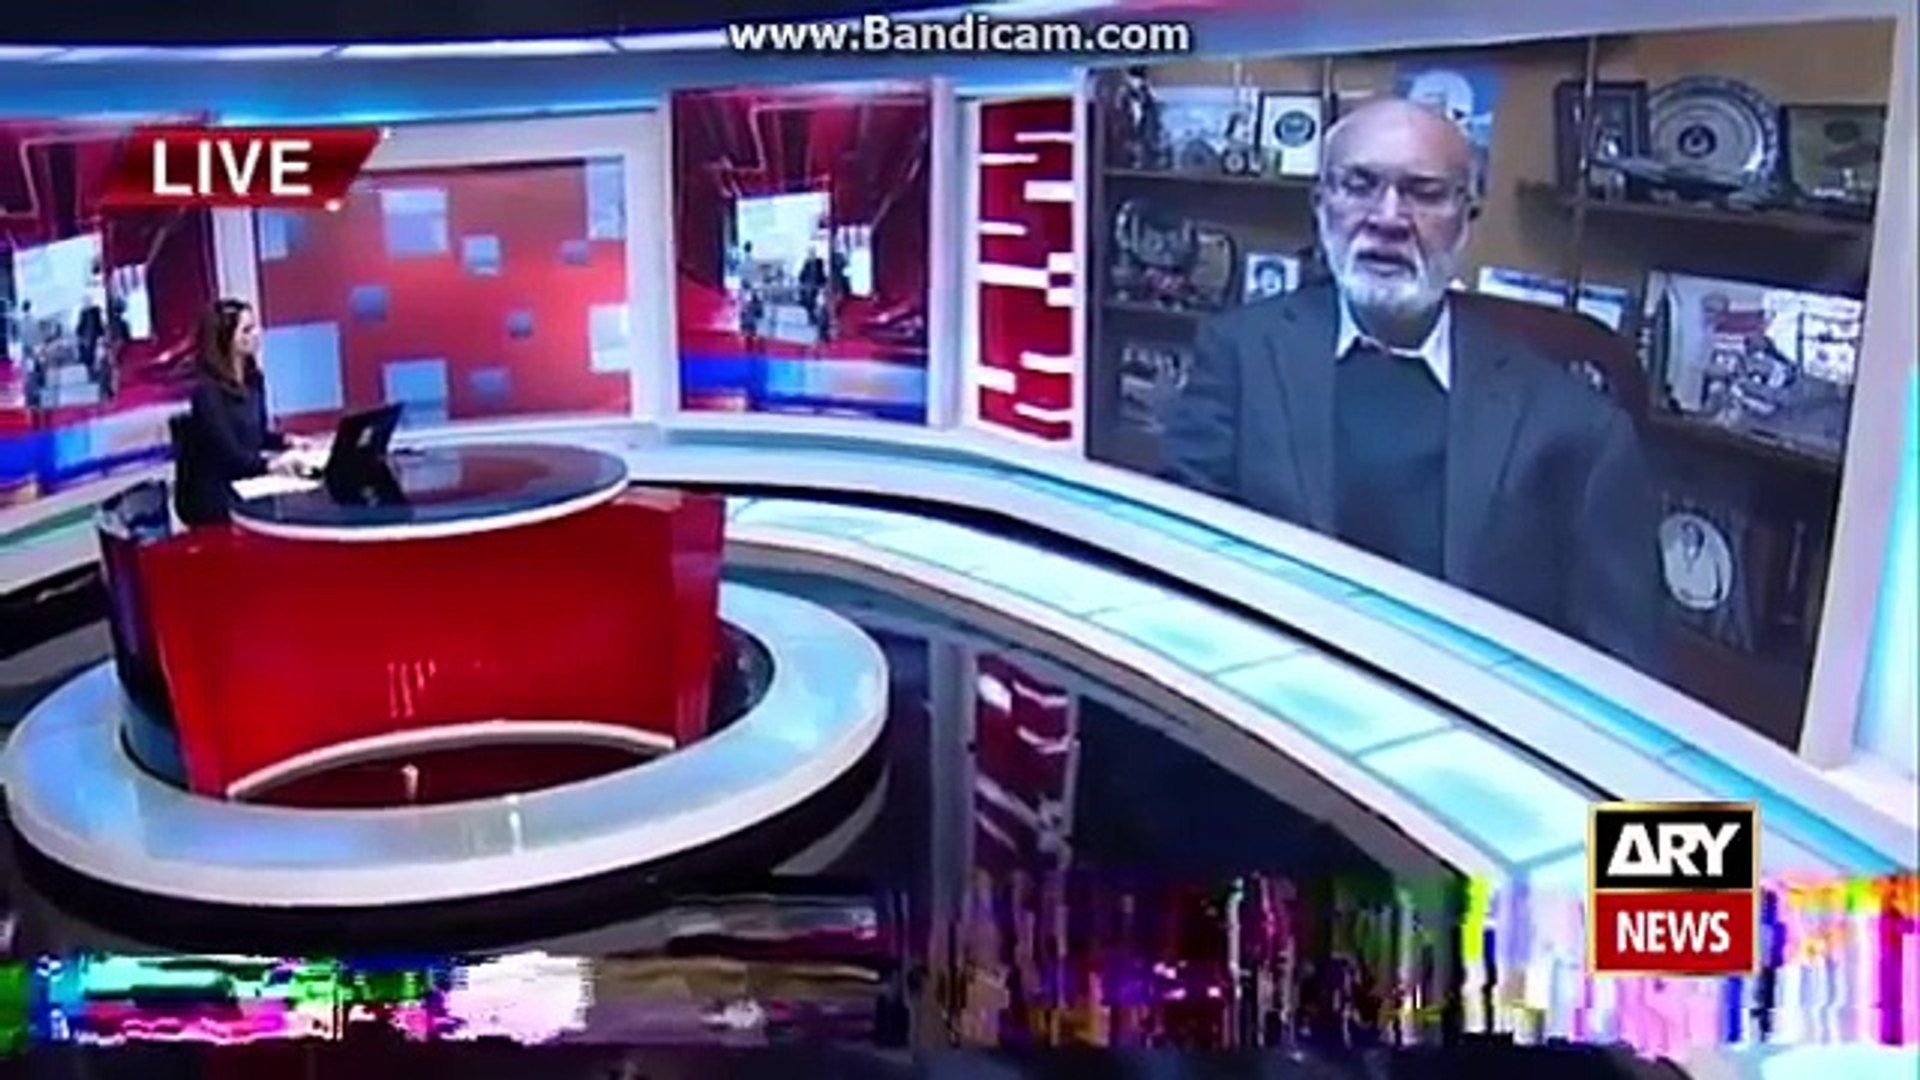 Ary News Headlines 29 December 2015, After Modi Visit Army Cheif Visit To Afganistan